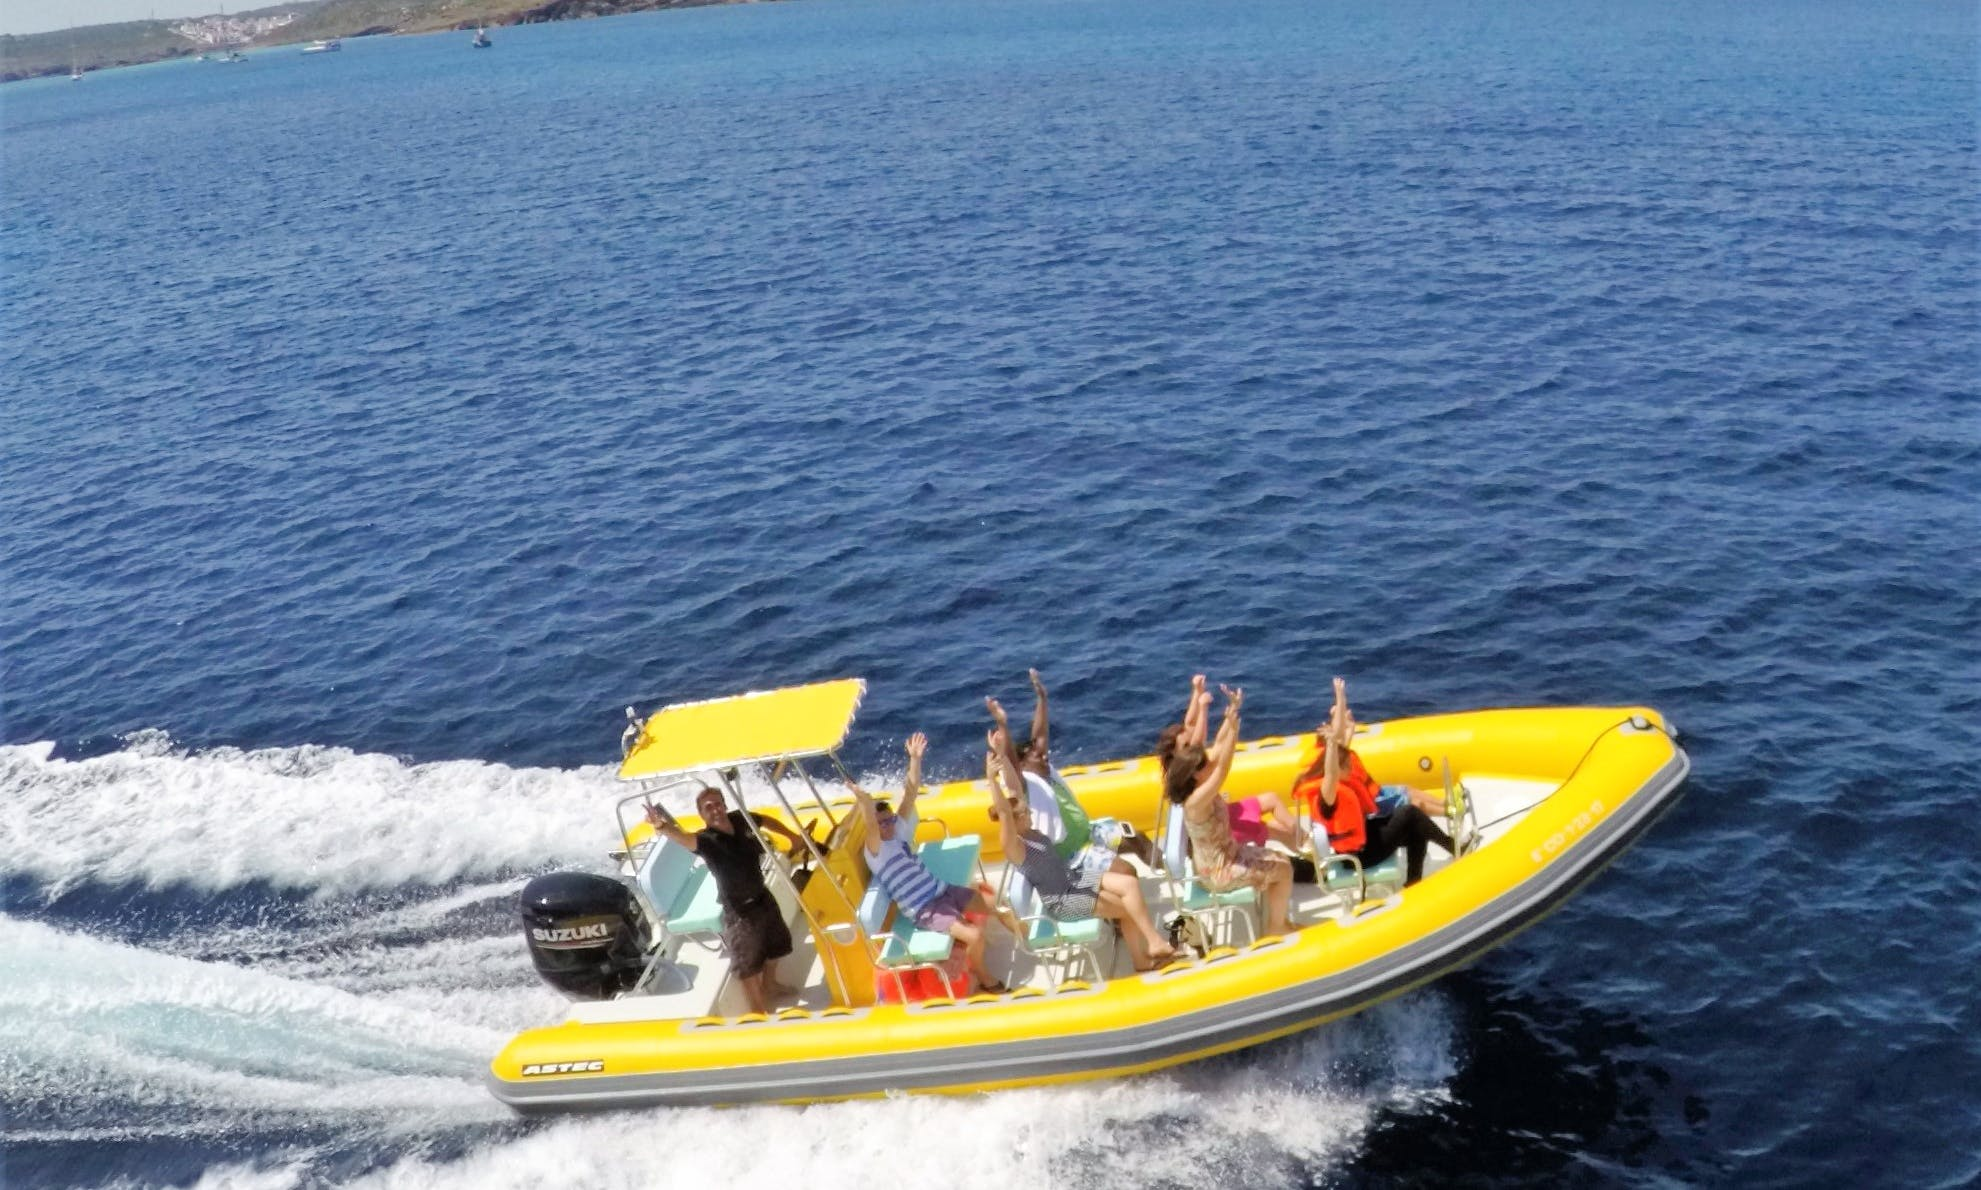 Exclusive Boat Trips on RIB in the islands of Menorca, Spain